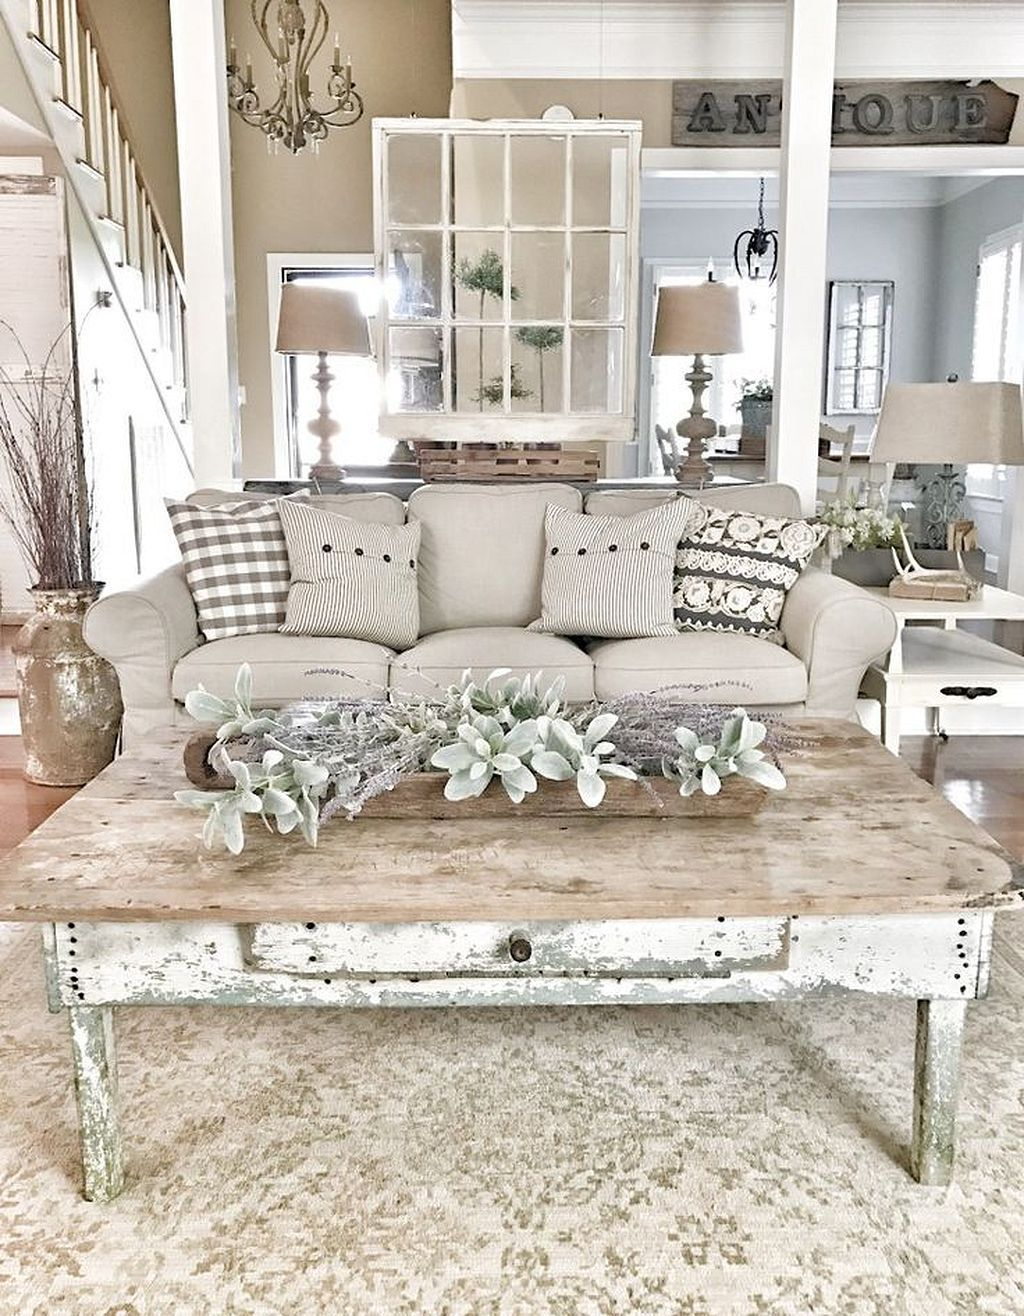 27 Awesome French Country Living Room Ideas Farmhouse Decor Living Room Farm House Living Room Modern Farmhouse Living Room